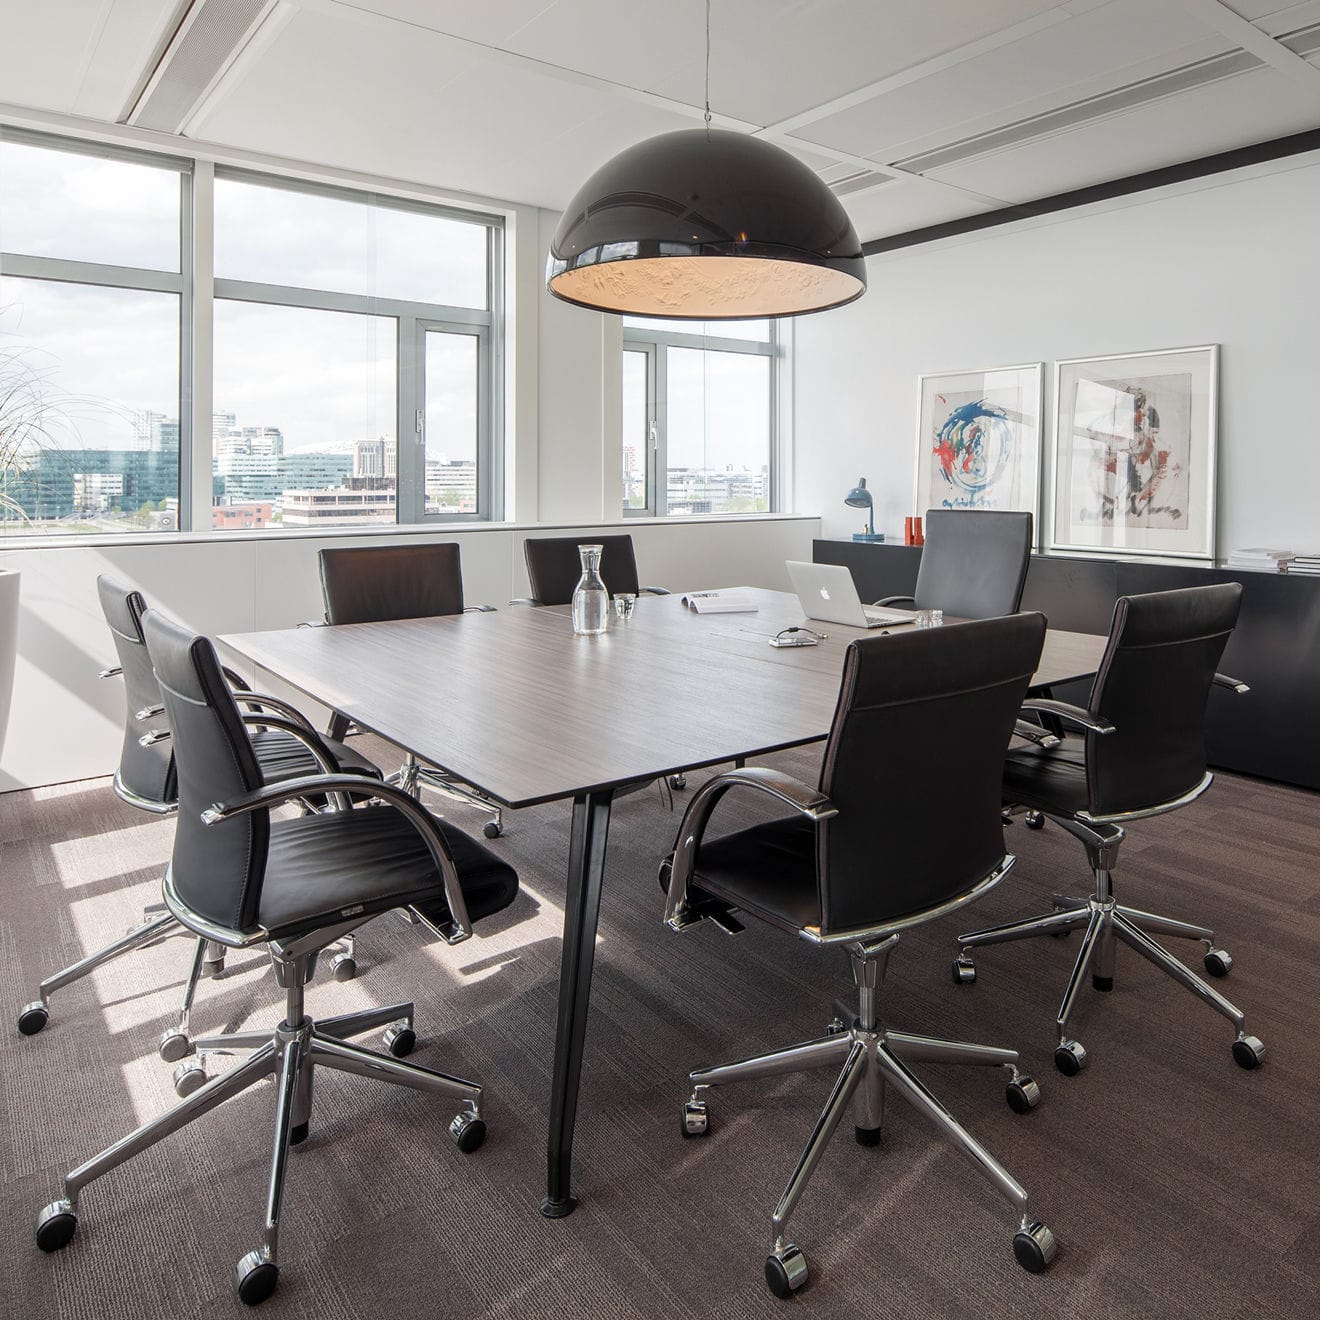 Contemporary Boardroom Table Glass Wooden Acrylic AHREND - Glass boardroom table